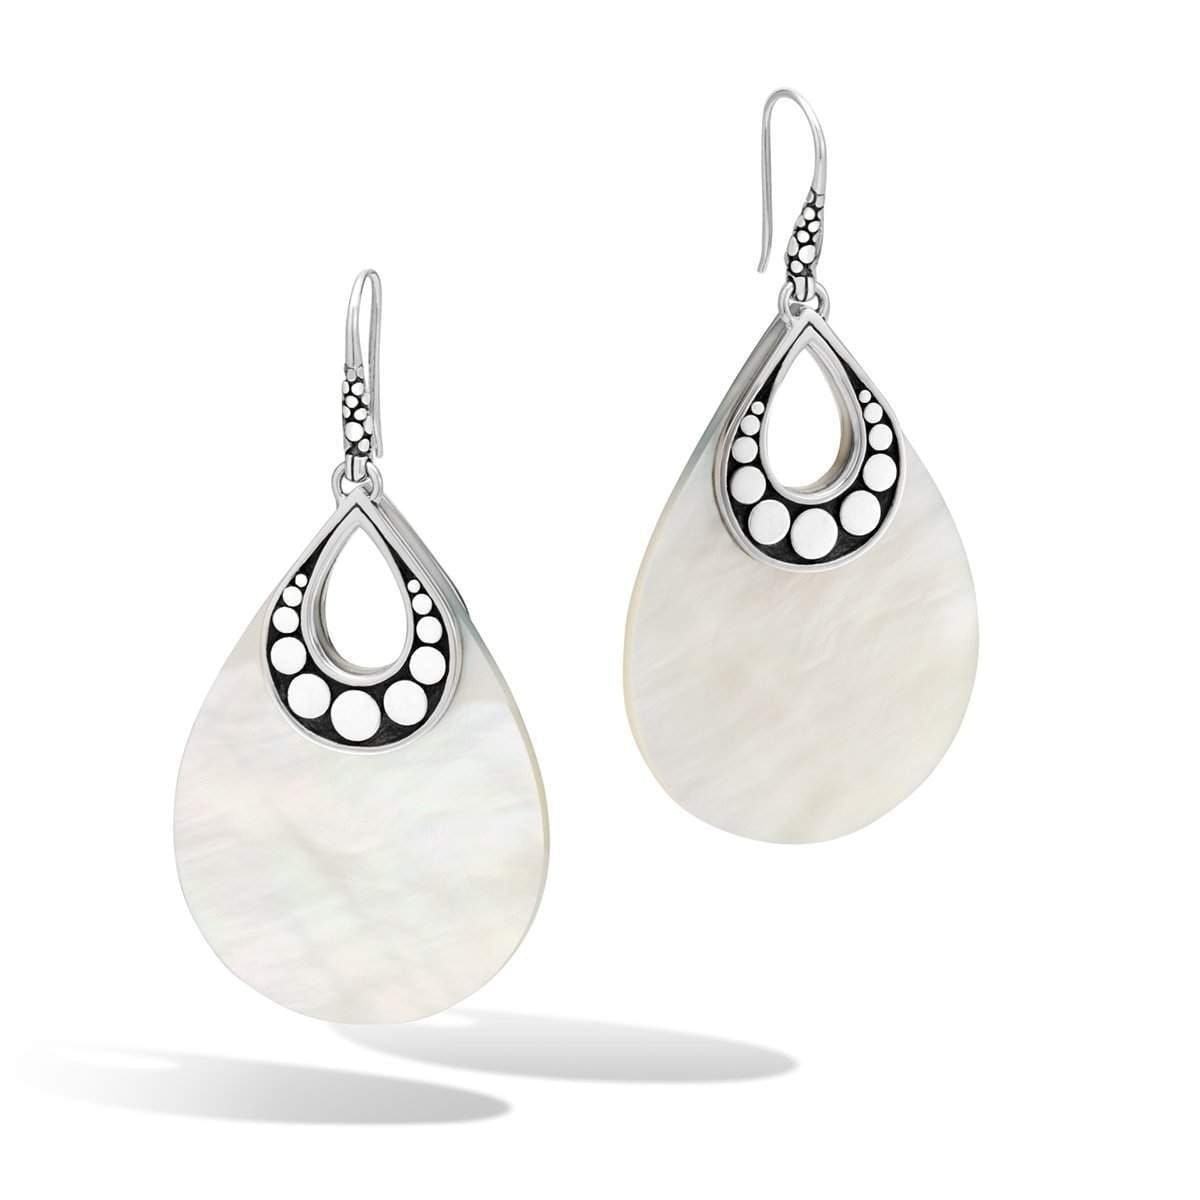 Dot Silver Mother of Pearl Earrings - EBS3909MOP-John Hardy-Renee Taylor Gallery